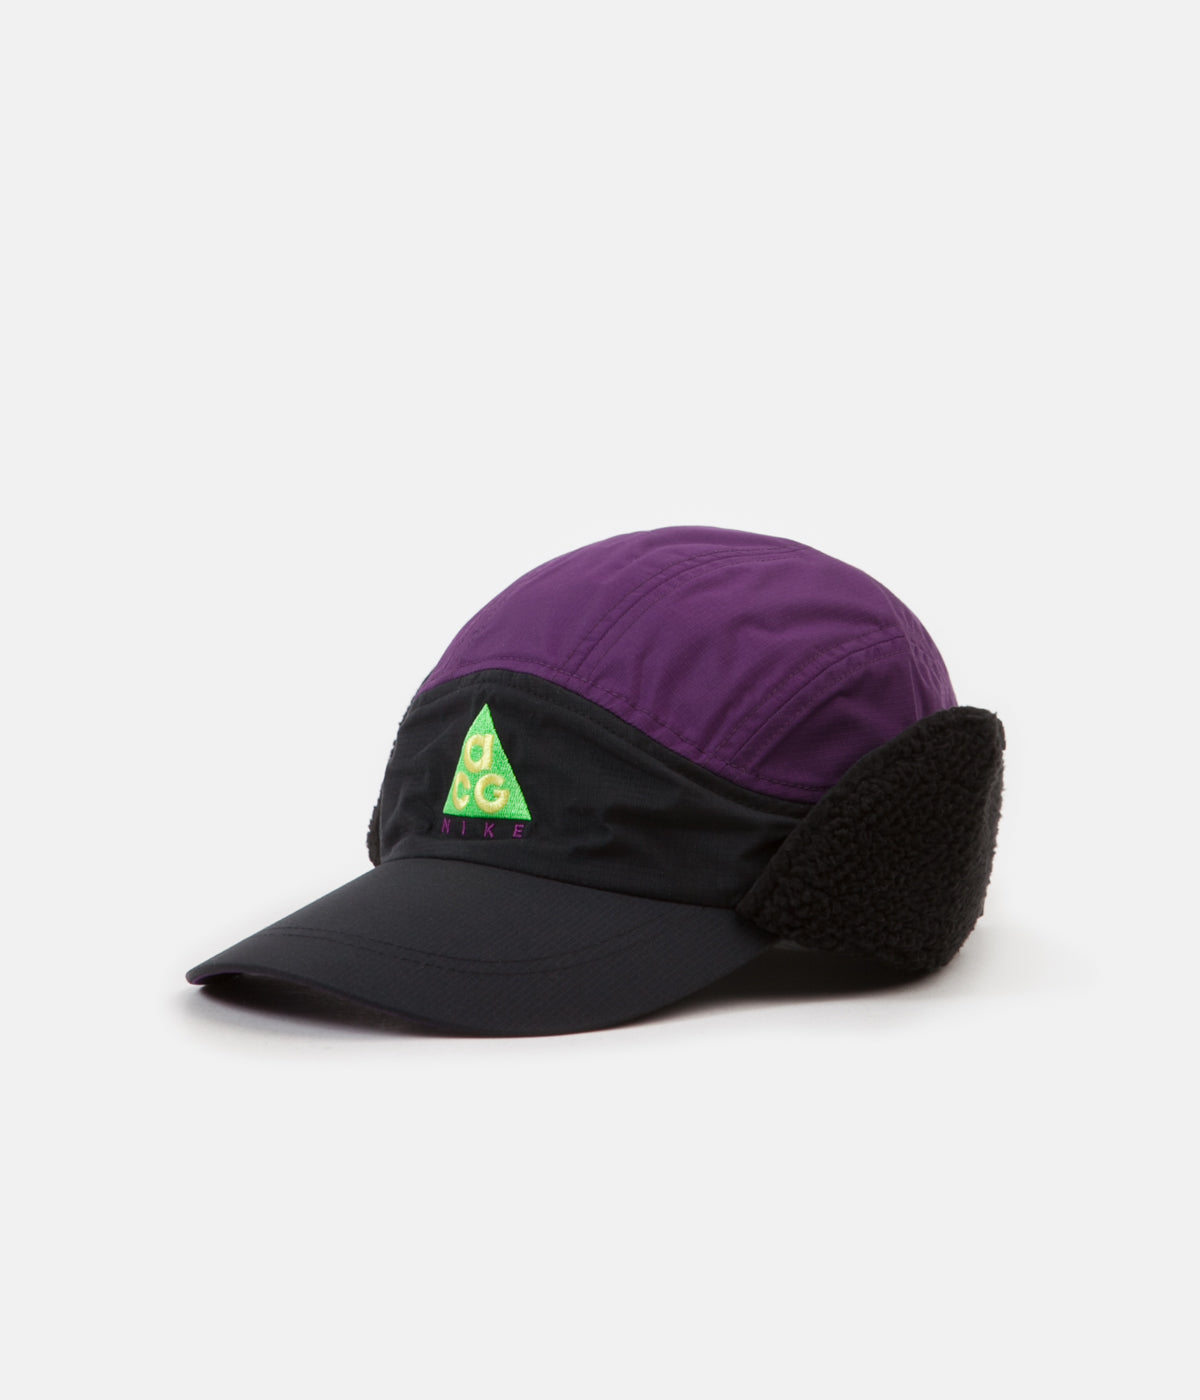 the latest 8fdc8 7deb2 ... Nike ACG Tailwind Cap - Black   Night Purple   Black ...